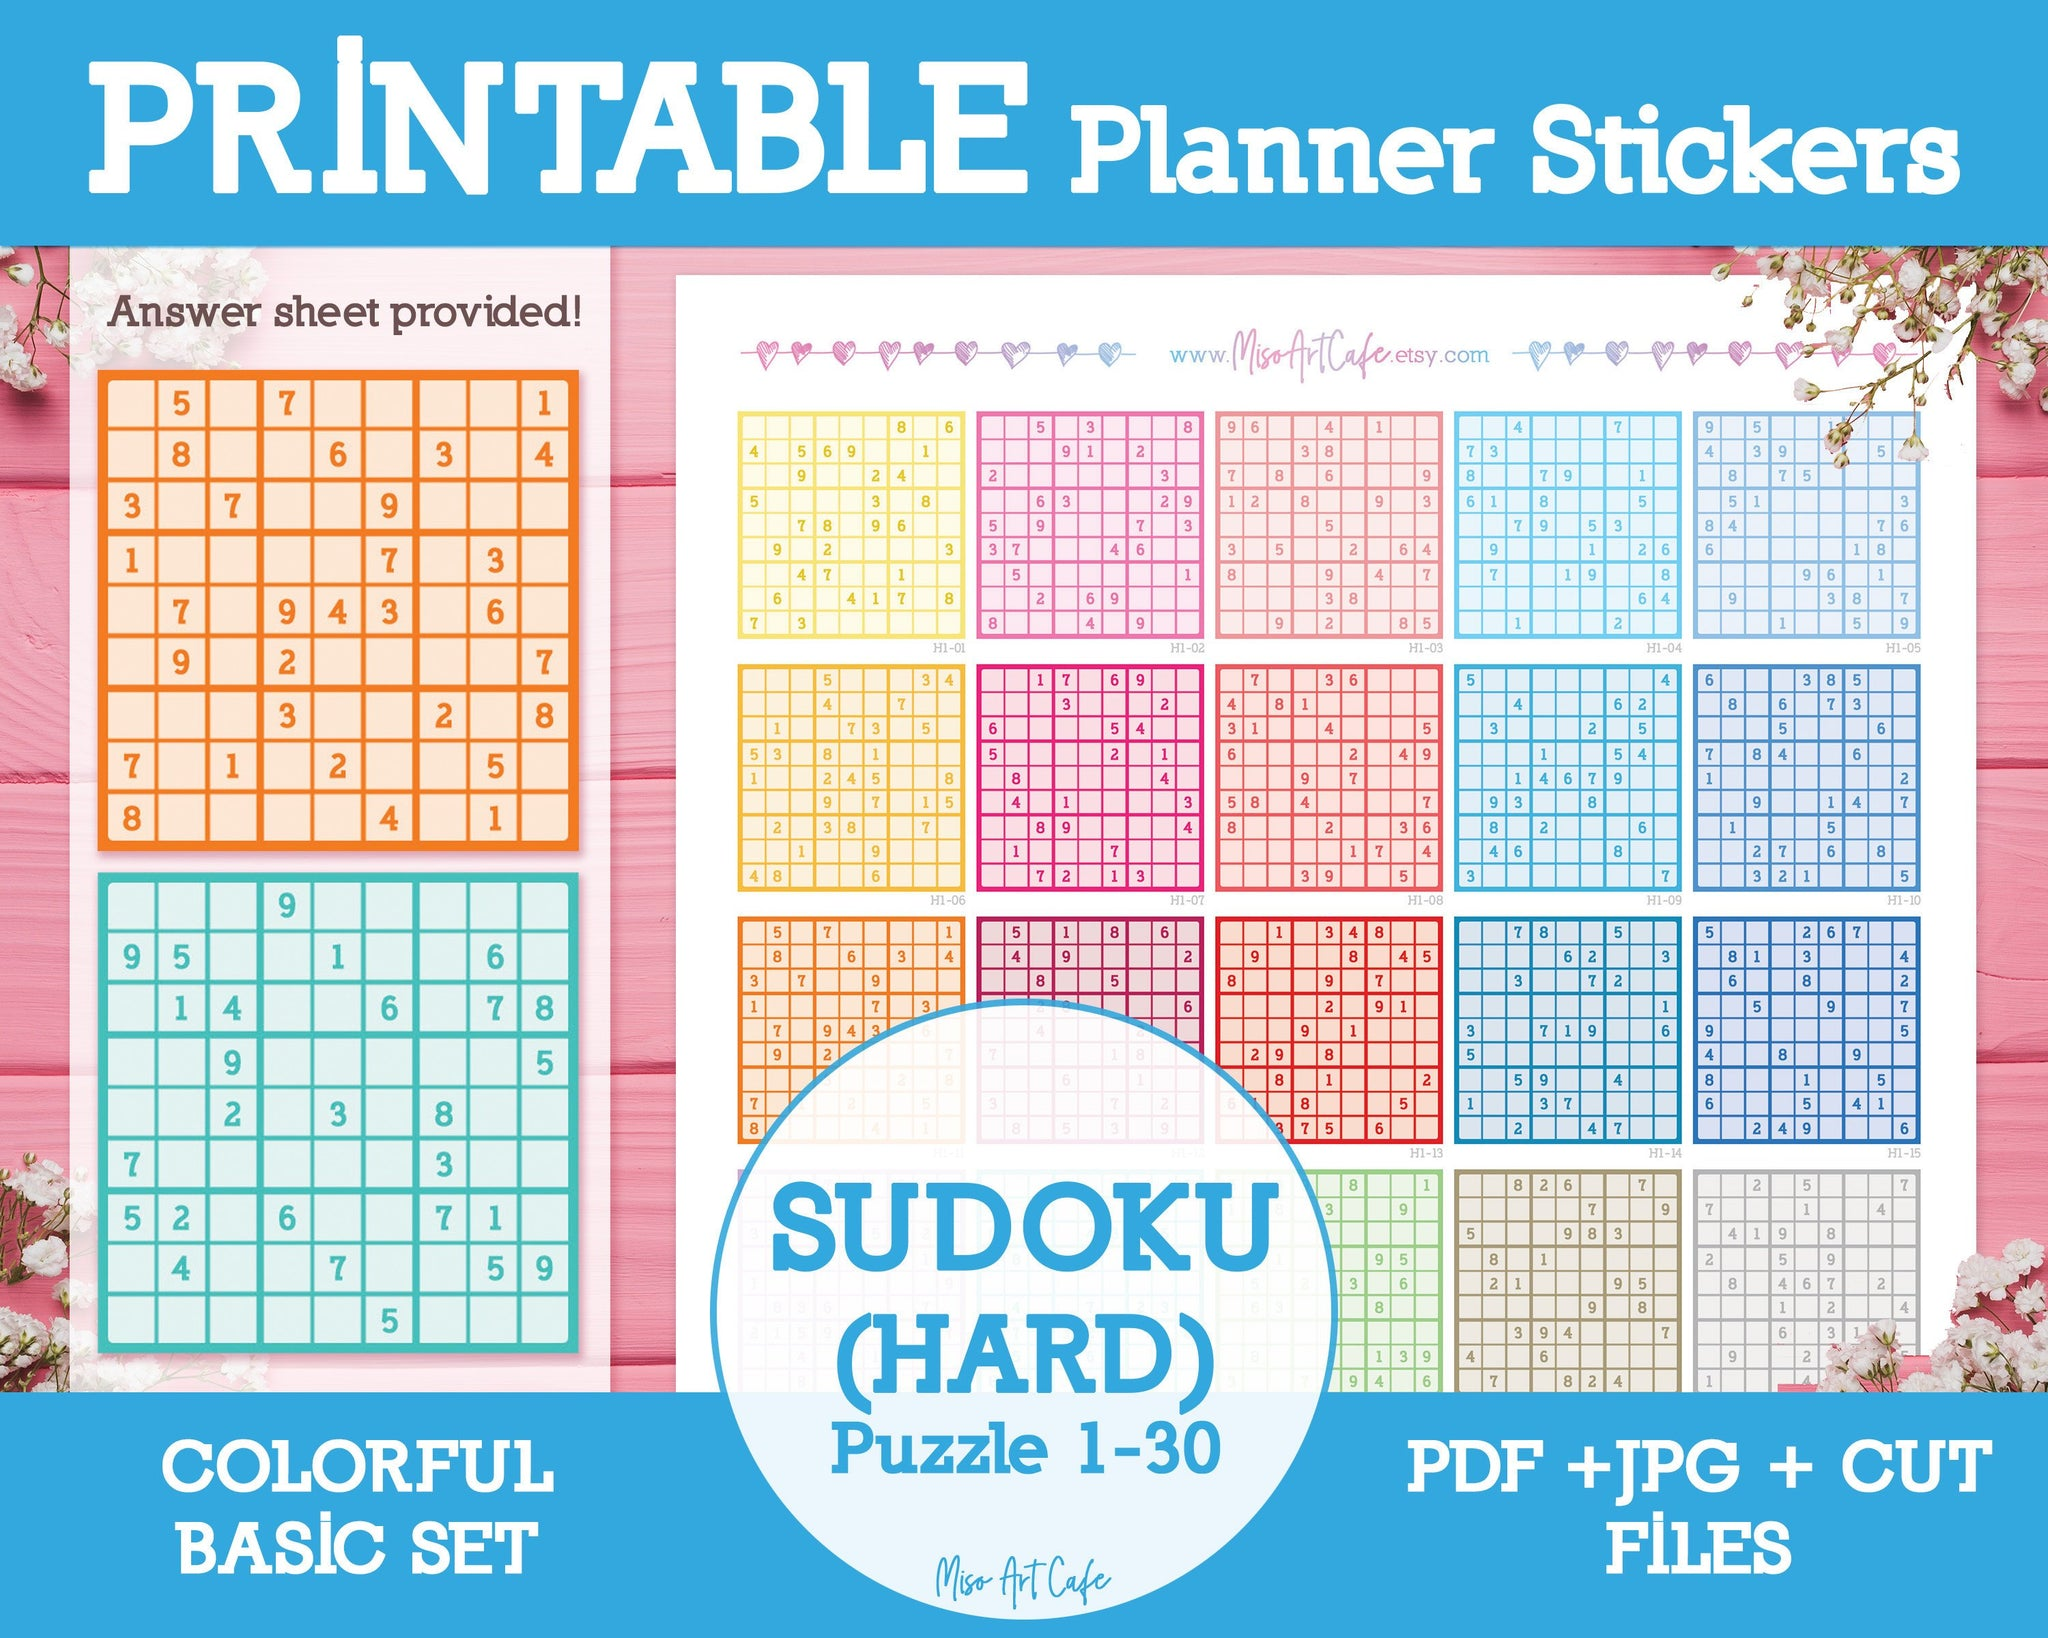 Printable Sudoku (Hard) - Colorful Basic Planner Stickers - Miso Art Cafe